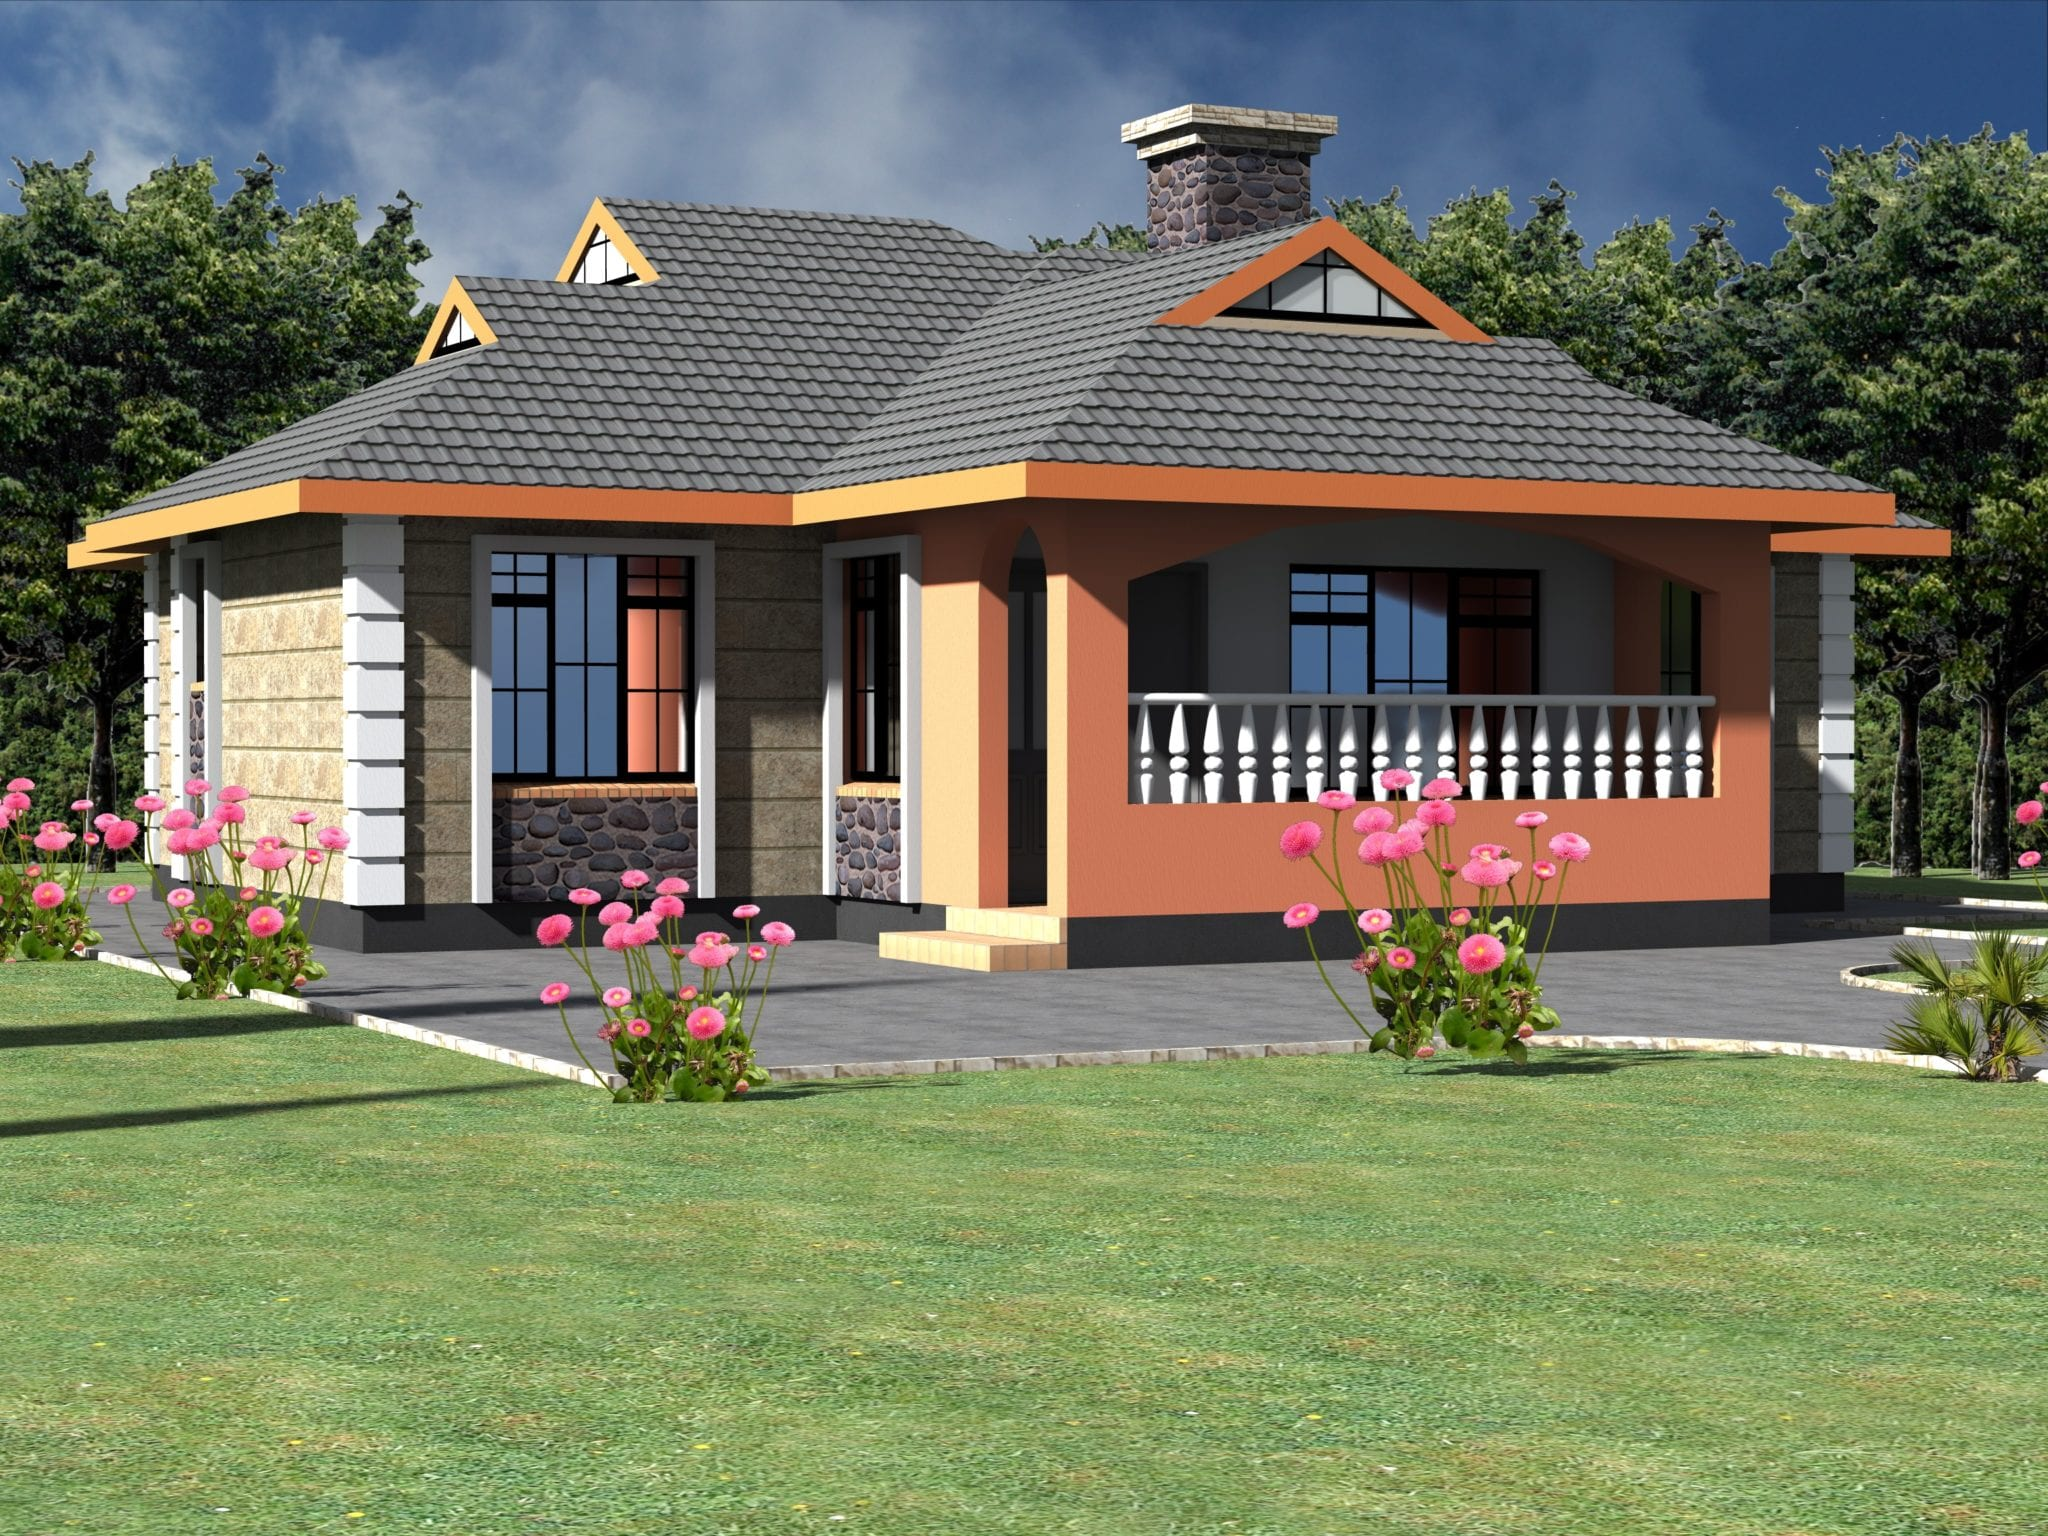 Neatly Designed Simple 3 Bedroom Bungalow House